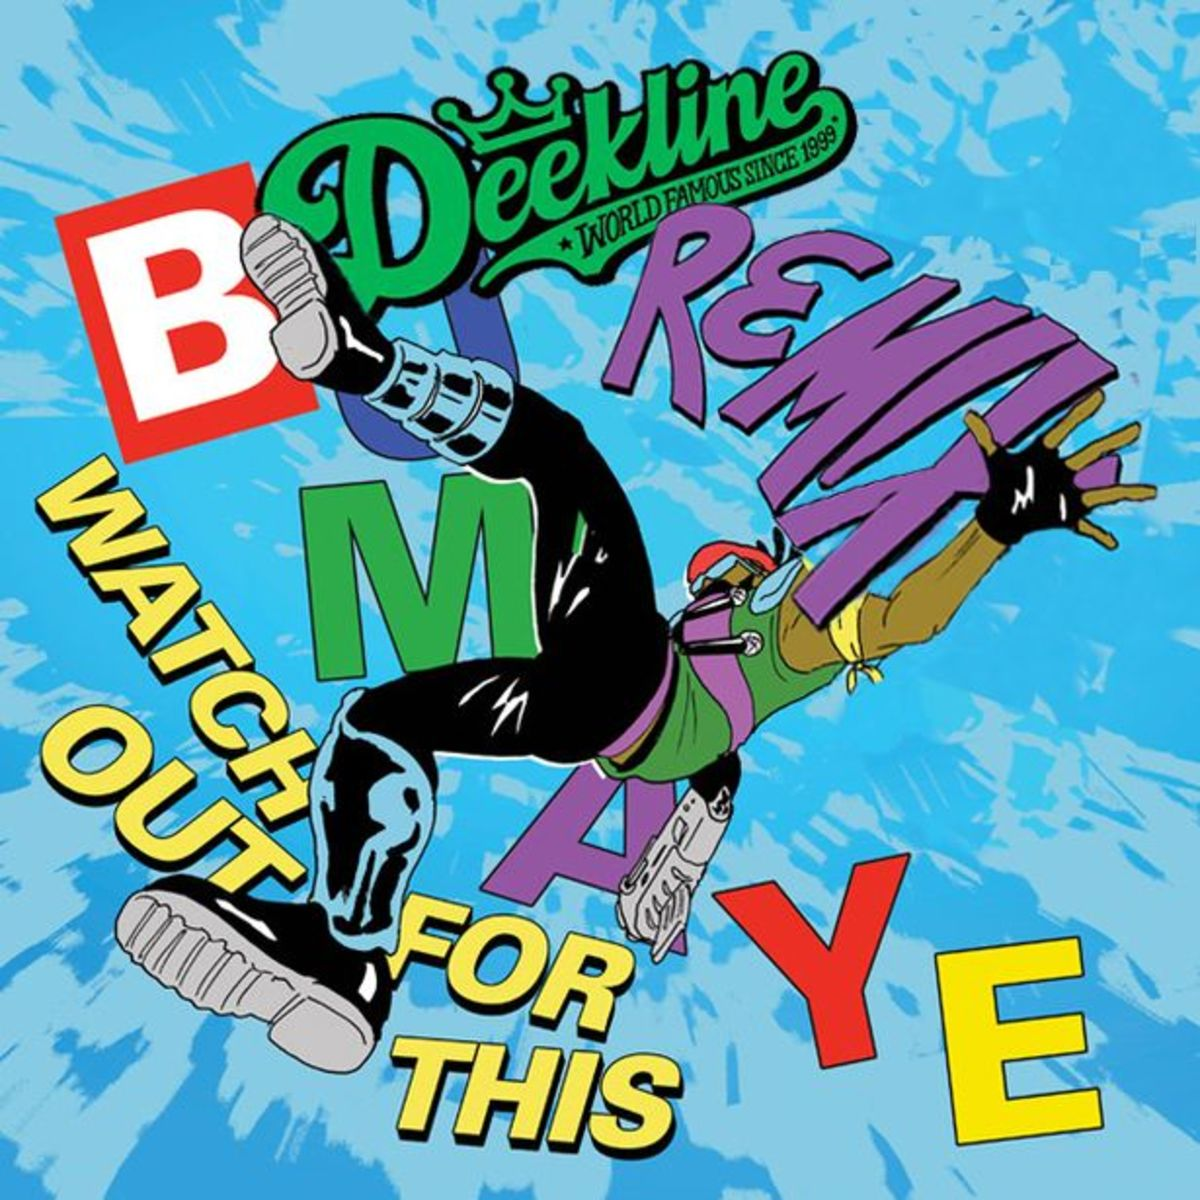 EDM Download: Major Lazer 'Watch Out For This' (Deekline Remix); File Under 'Electro-House'